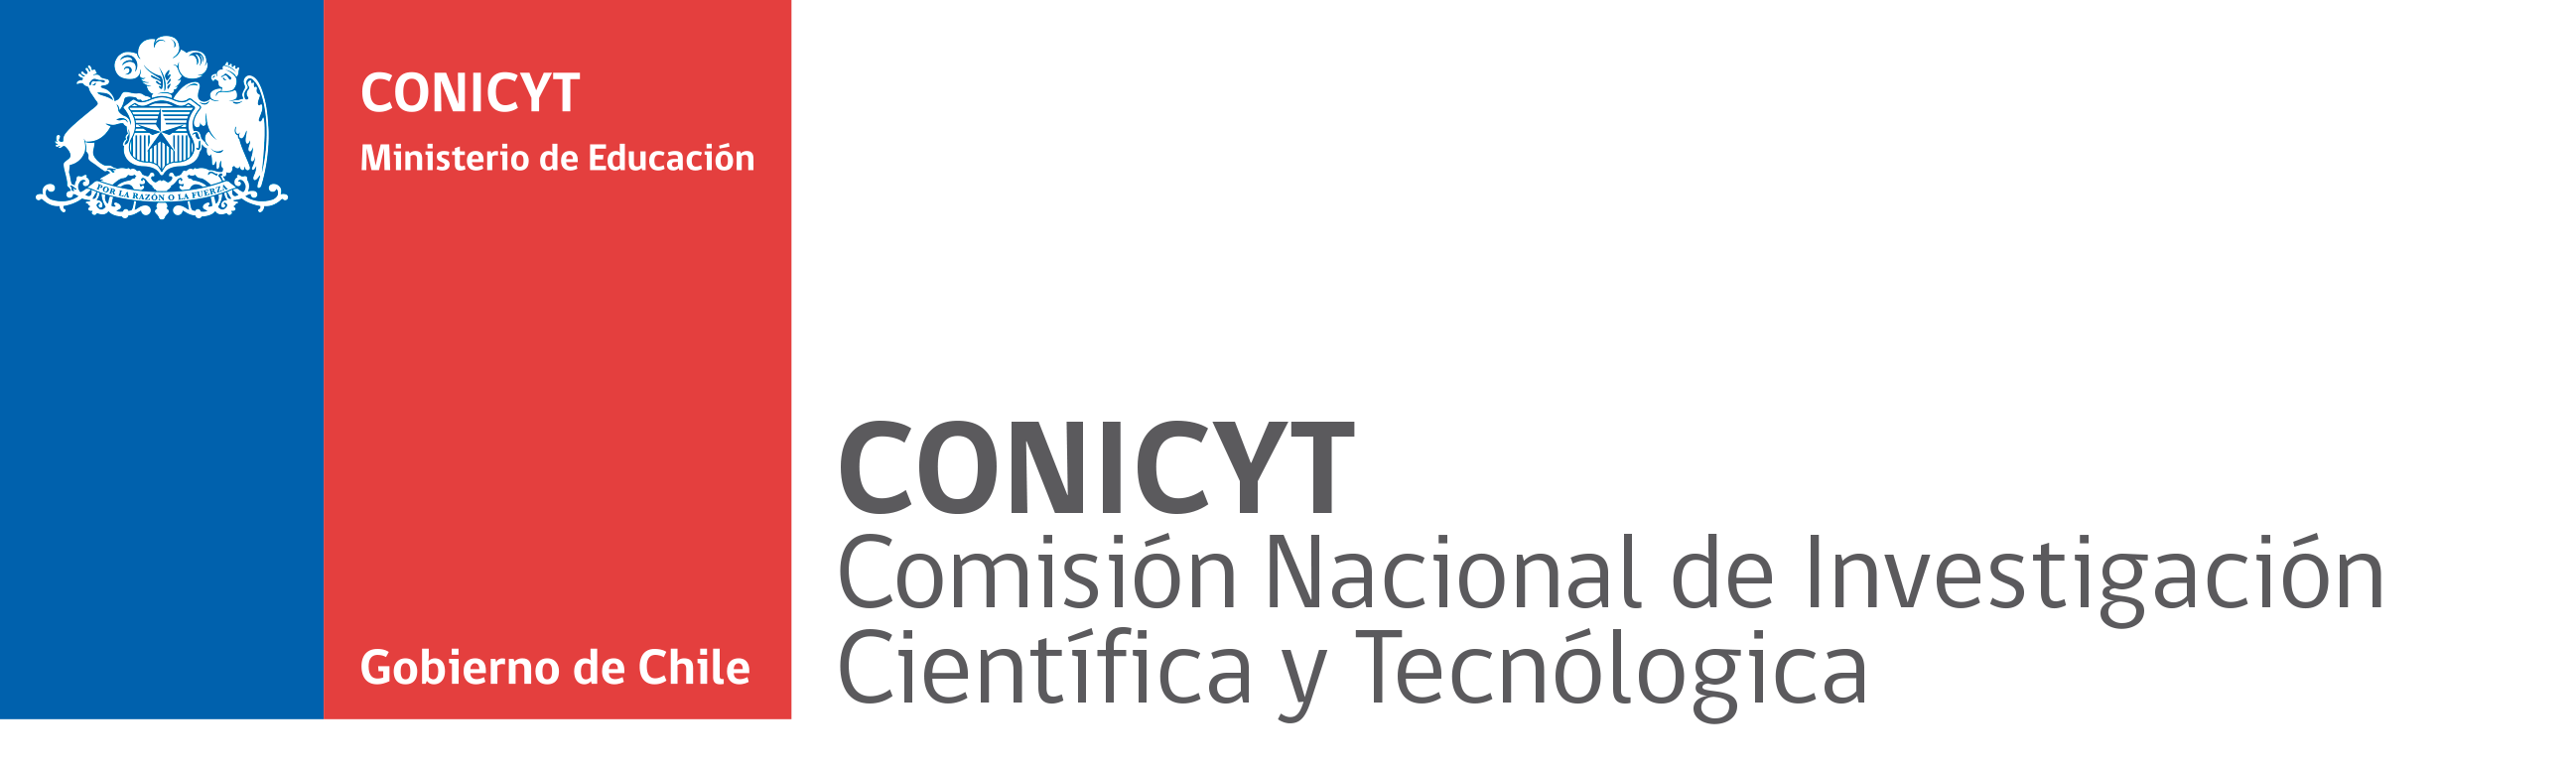 logos-conicyt-copia-1